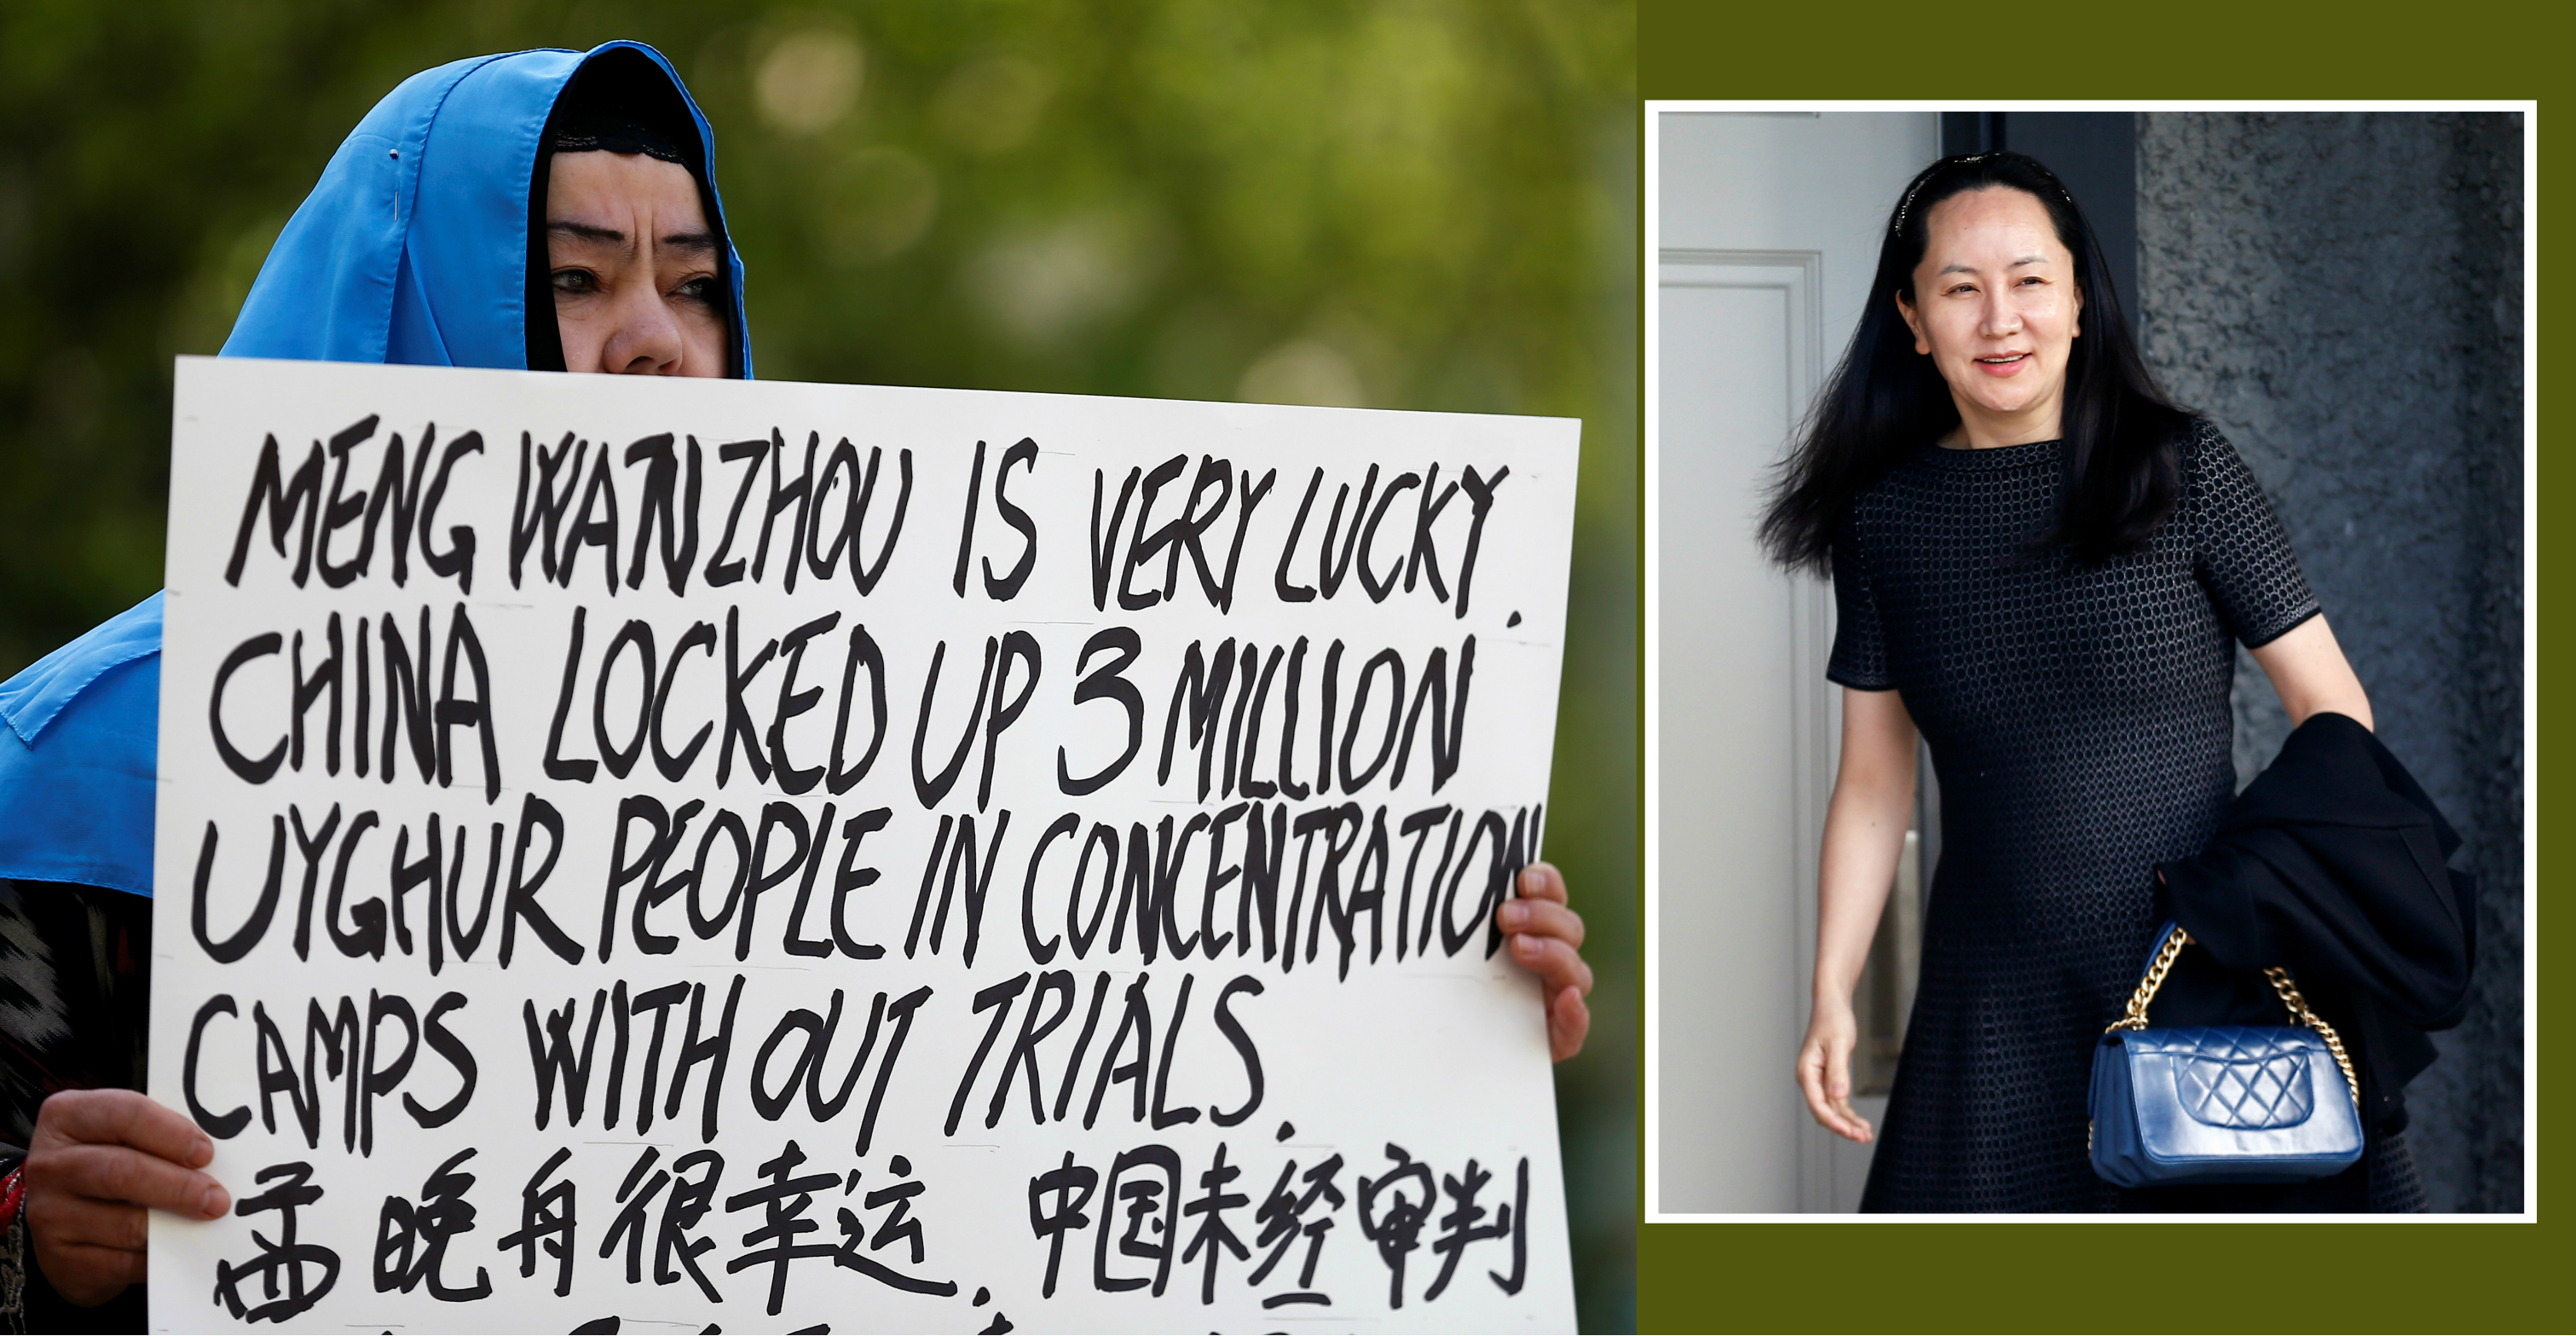 A demonstrator holds a sign protesting China's treatment of Uighur people in Xinjiang during a court appearance by Huawei CFO Meng Wanzhou in Vancouver on Wednesday. Photo: Reuters